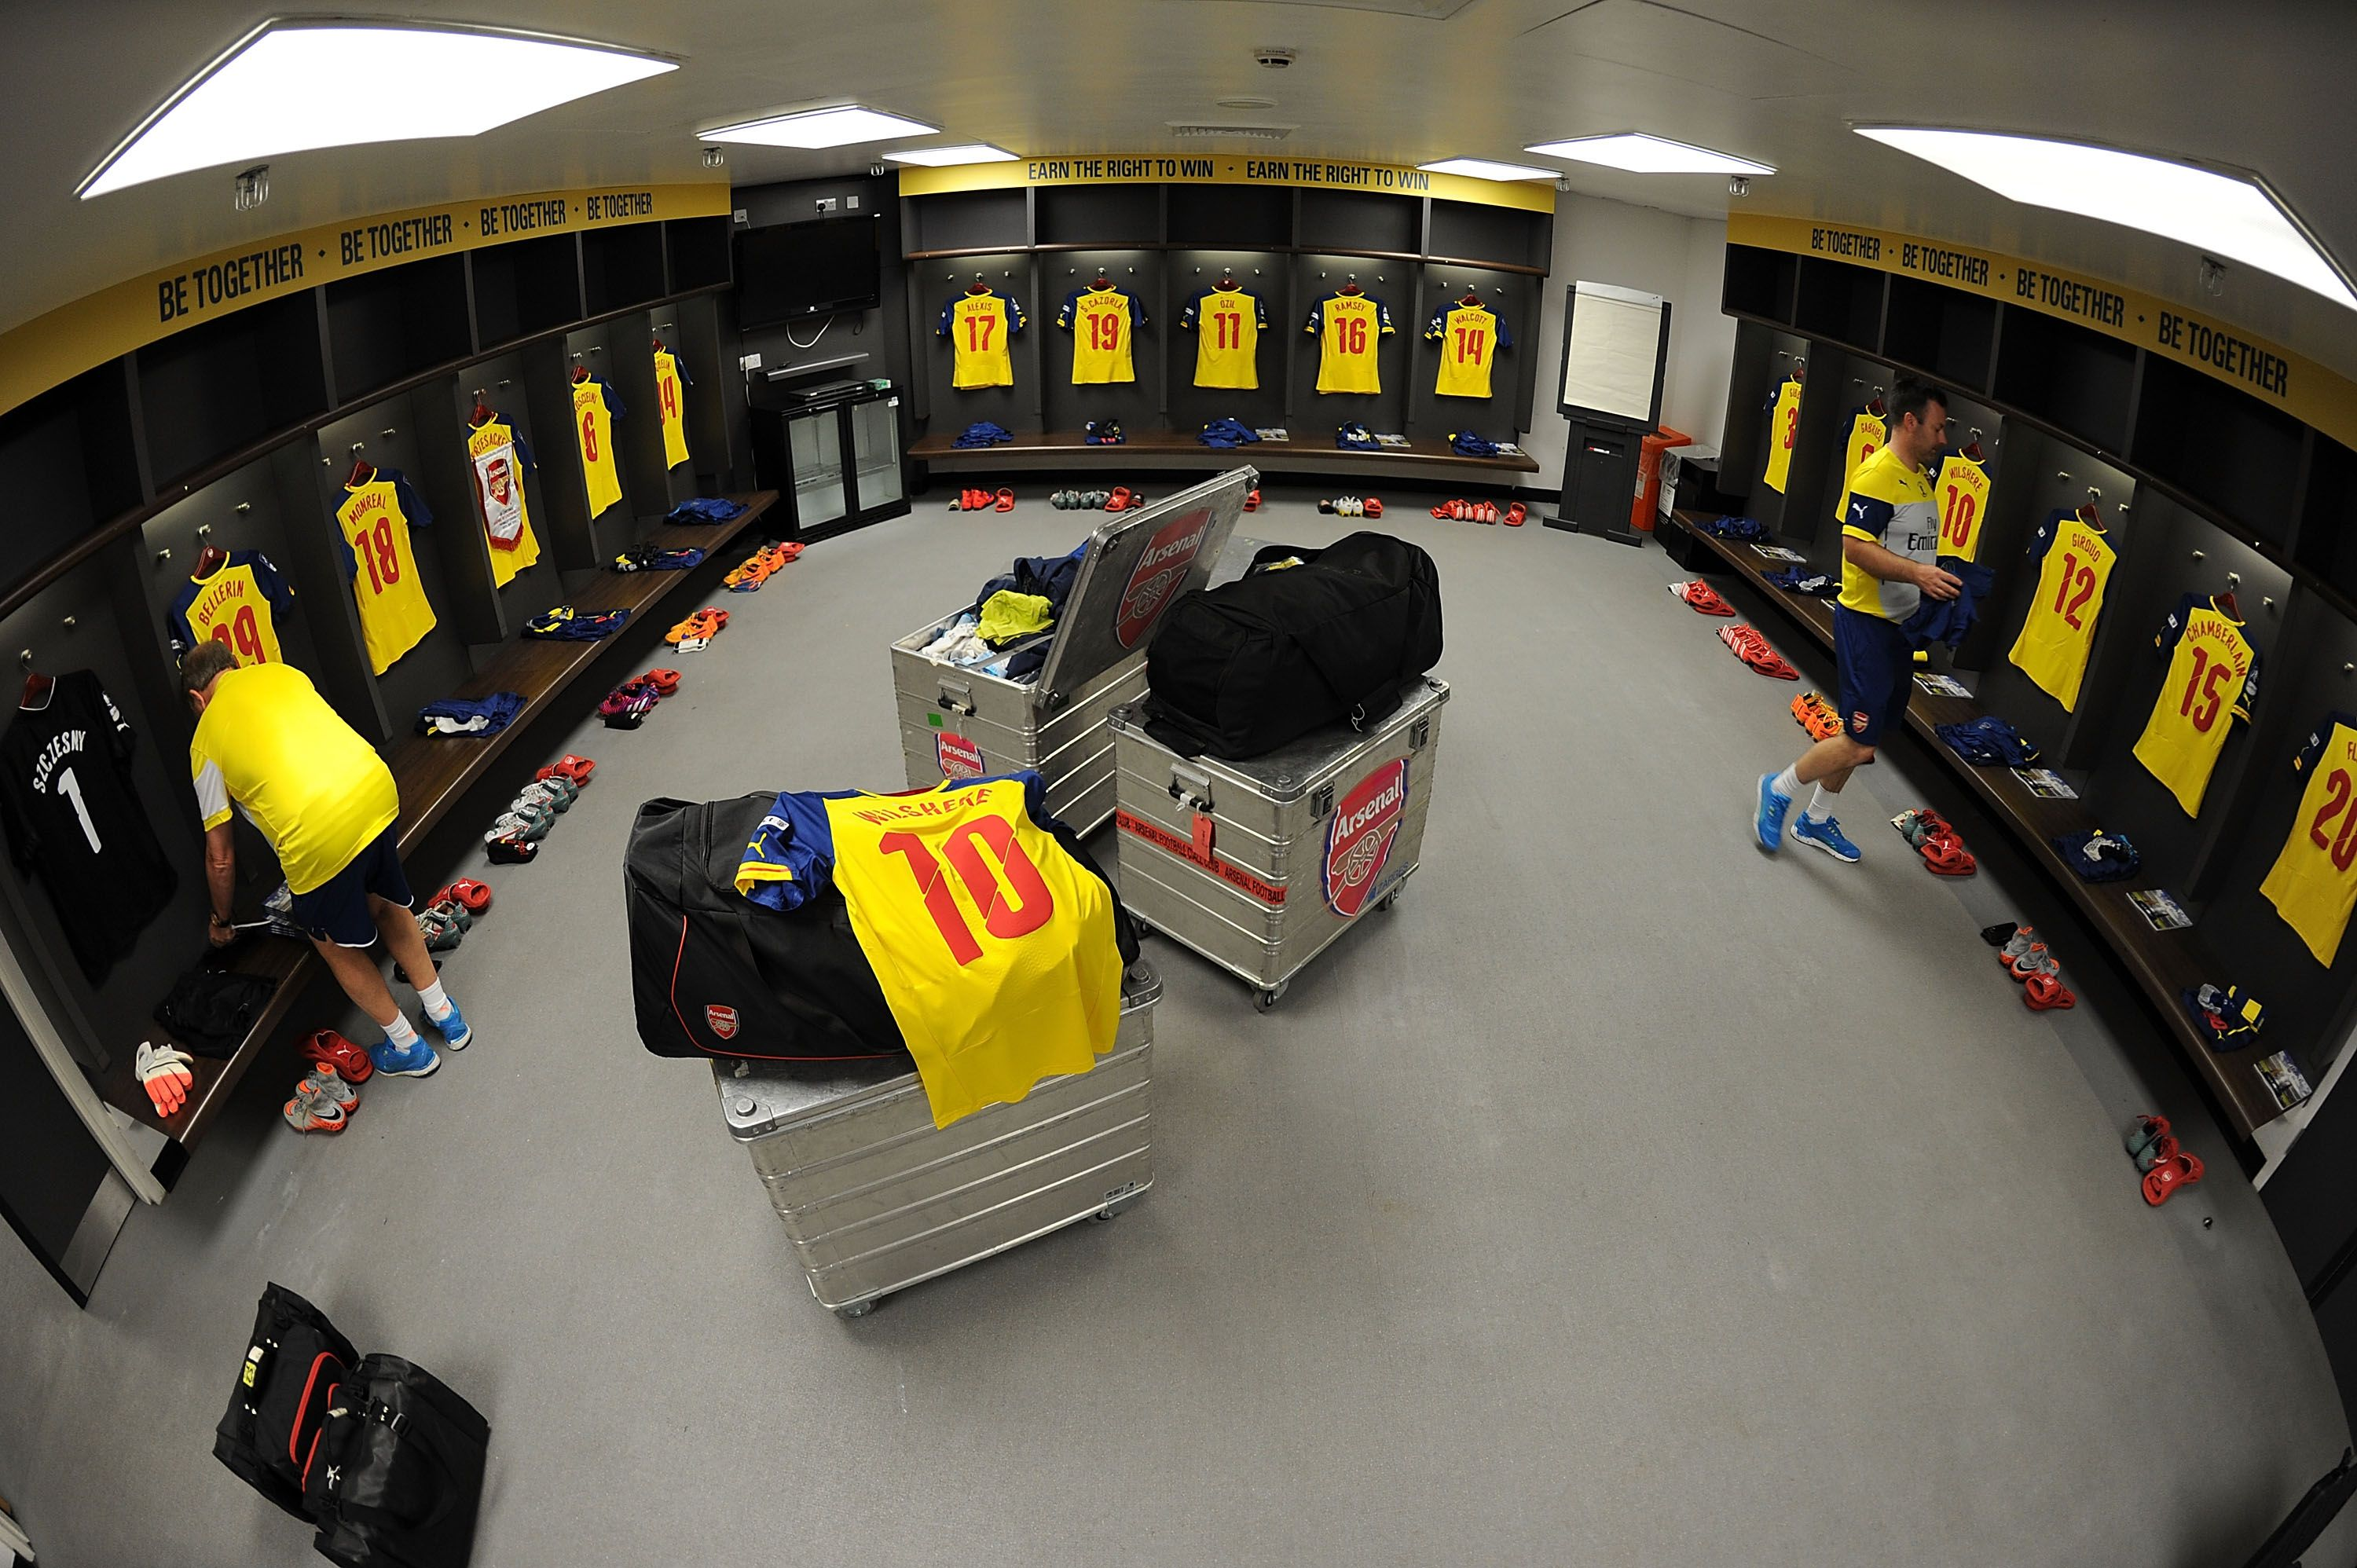 30th May 2015 Arsenal Changing Room Before The Match At Wembley Stadium Soccer Locker Locker Room European Soccer